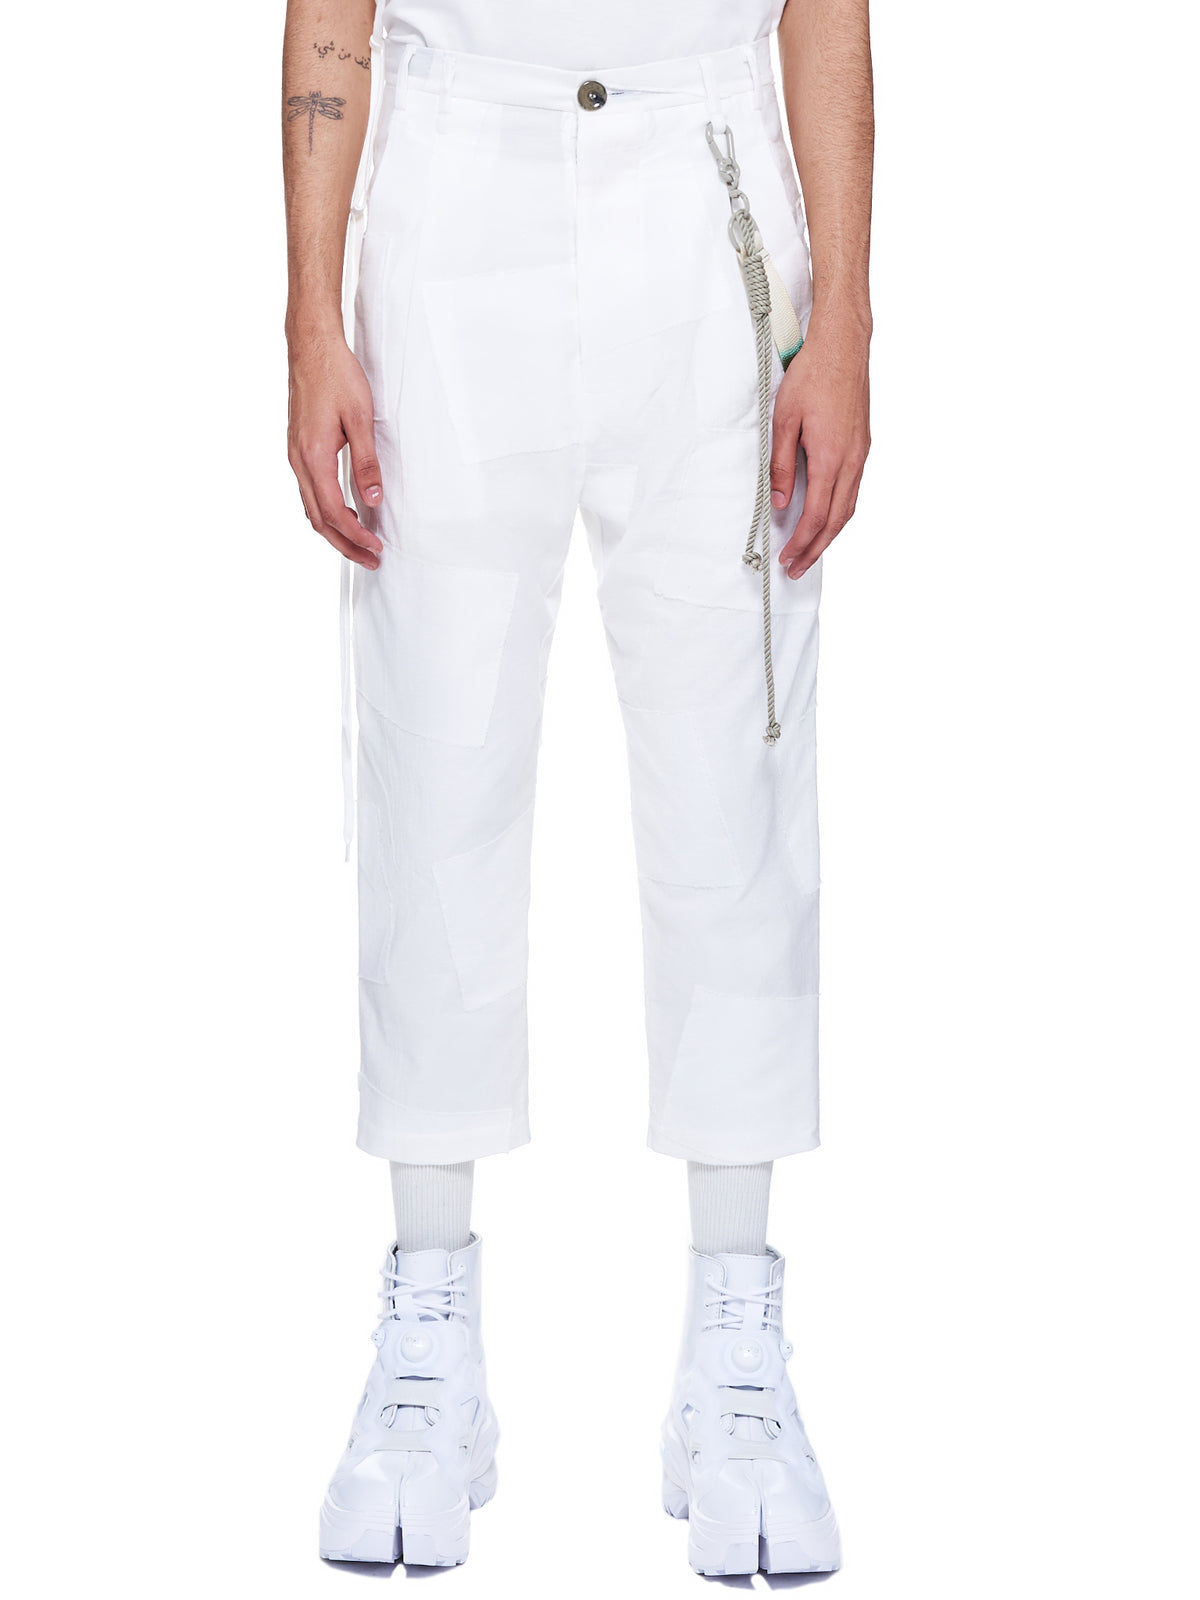 Pleated Patchwork Tapered Trousers (211-MPT037L-WHITE)